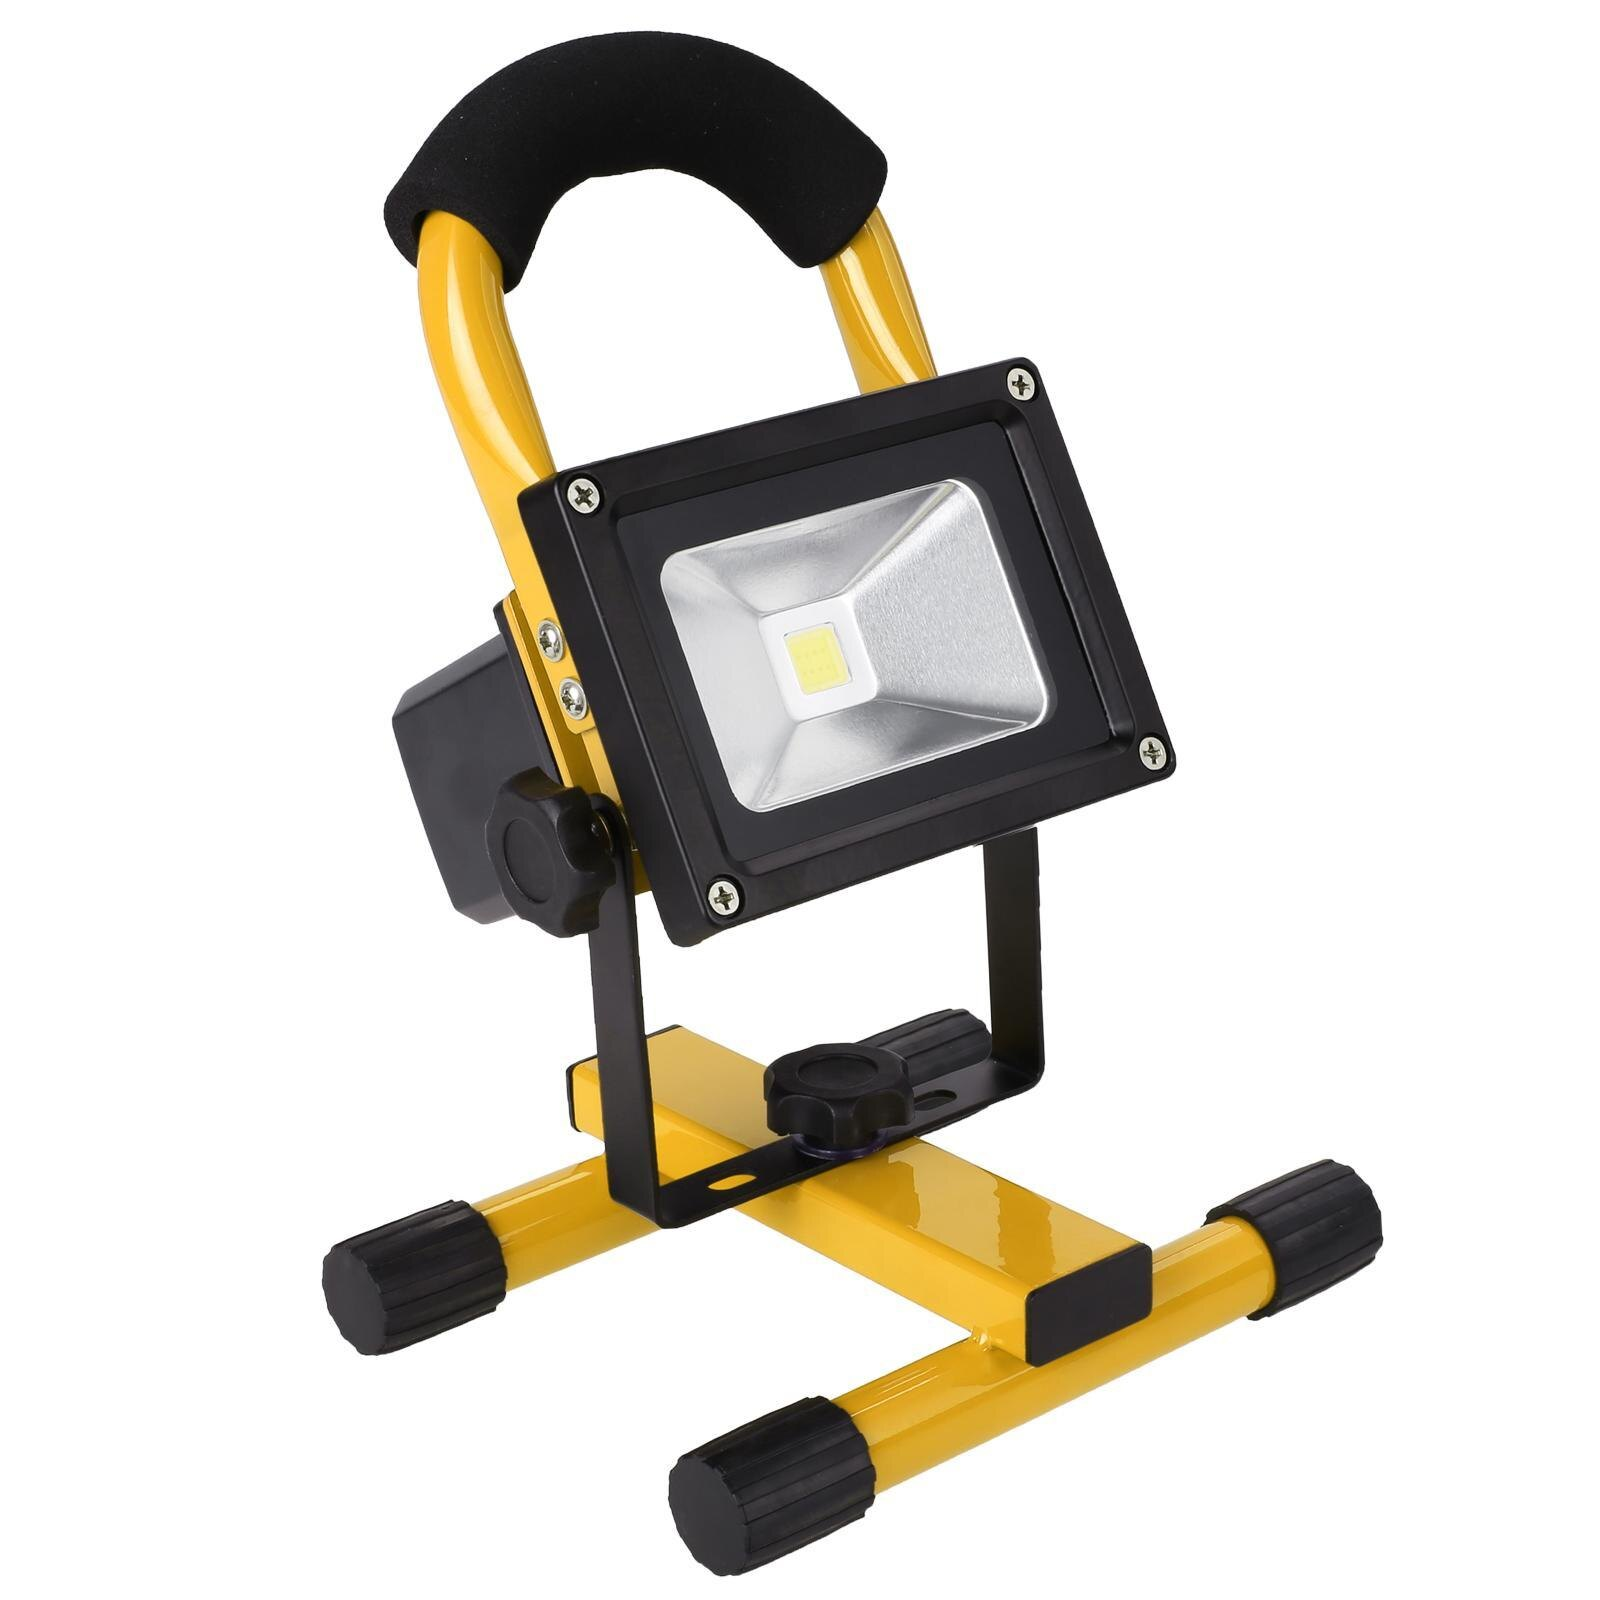 10W Wireless Rechargeable LED Flood Light Outdoor Camping Hiking Lamp 2